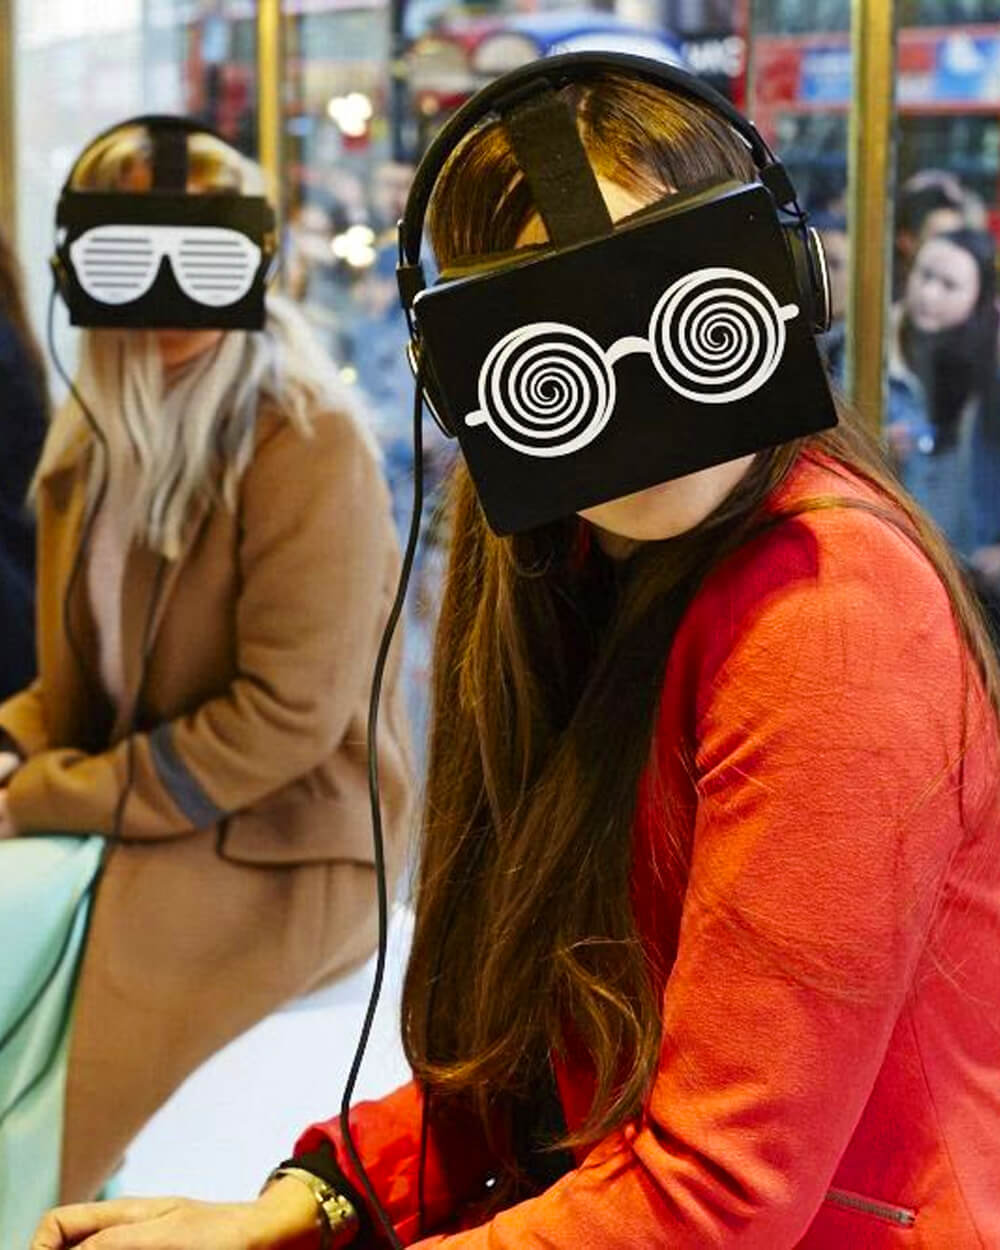 Future Of VR In Fashion